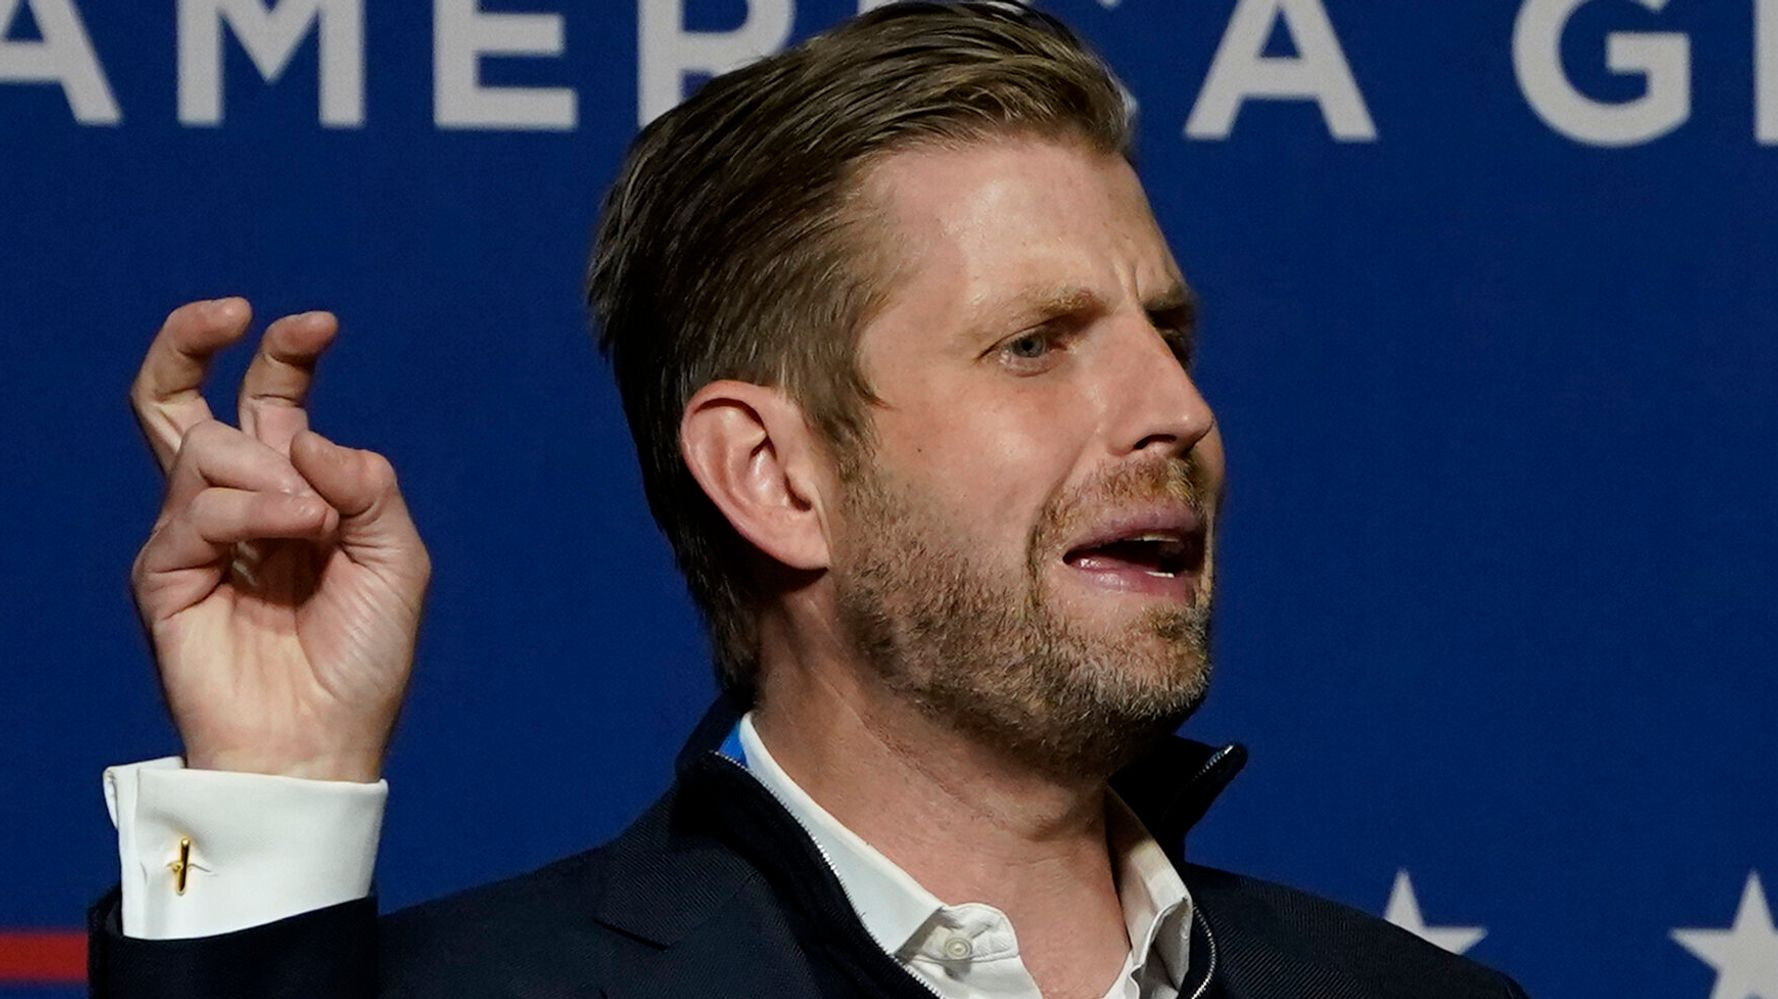 Eric Trump's Latest Attempt To Question The Election Goes Awry